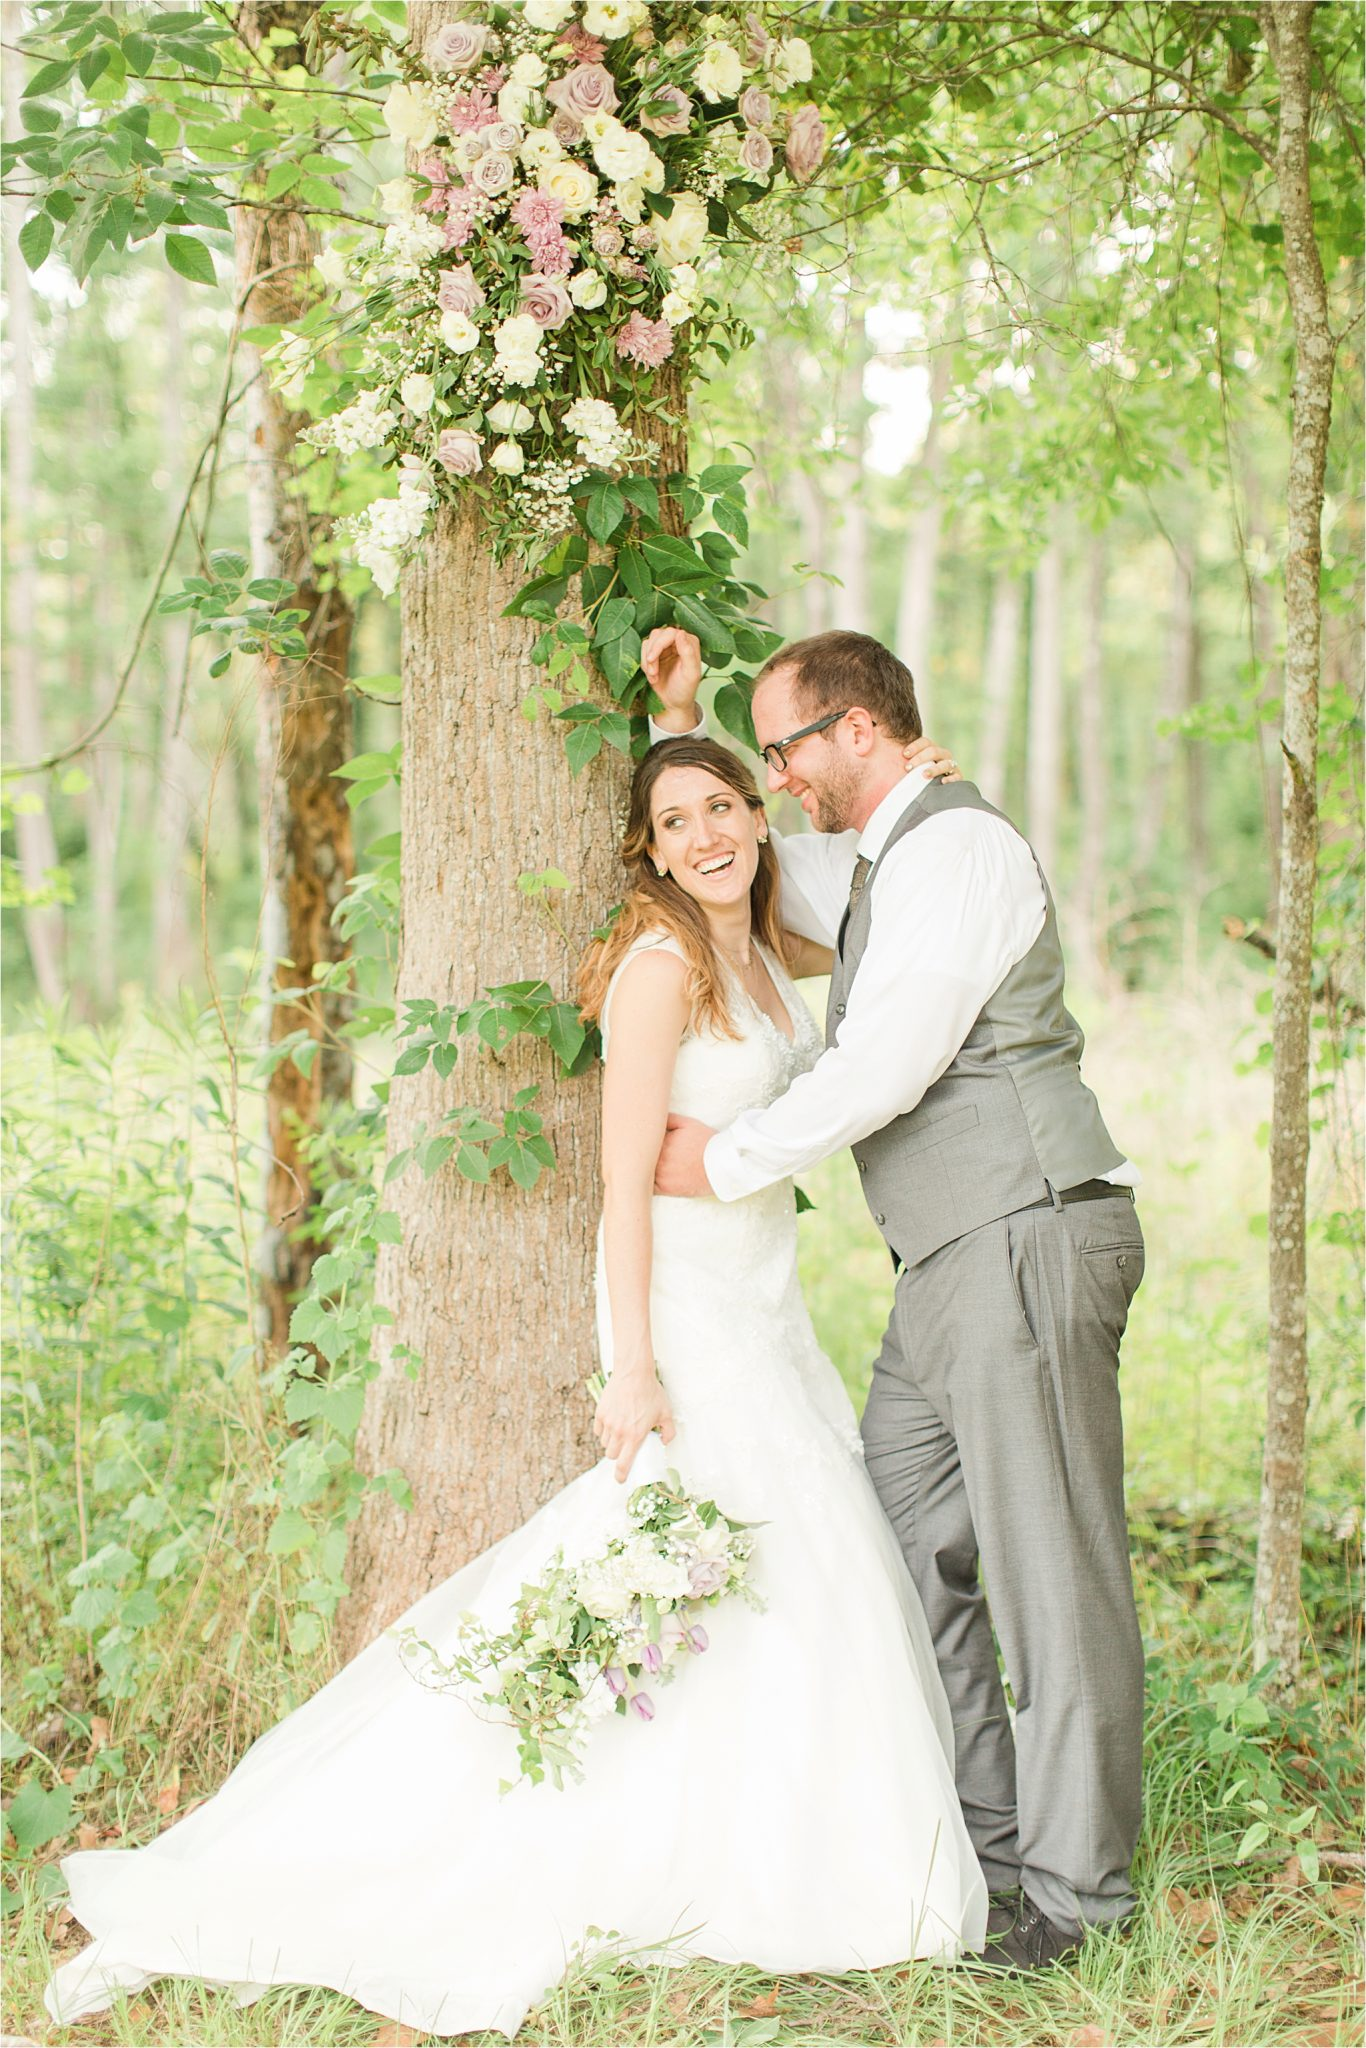 backyard country wedding-decorate trees with wedding flowers-bride and groom portraits-wedding day-grey grooms suit-vest-lavender flowers-candid laughter